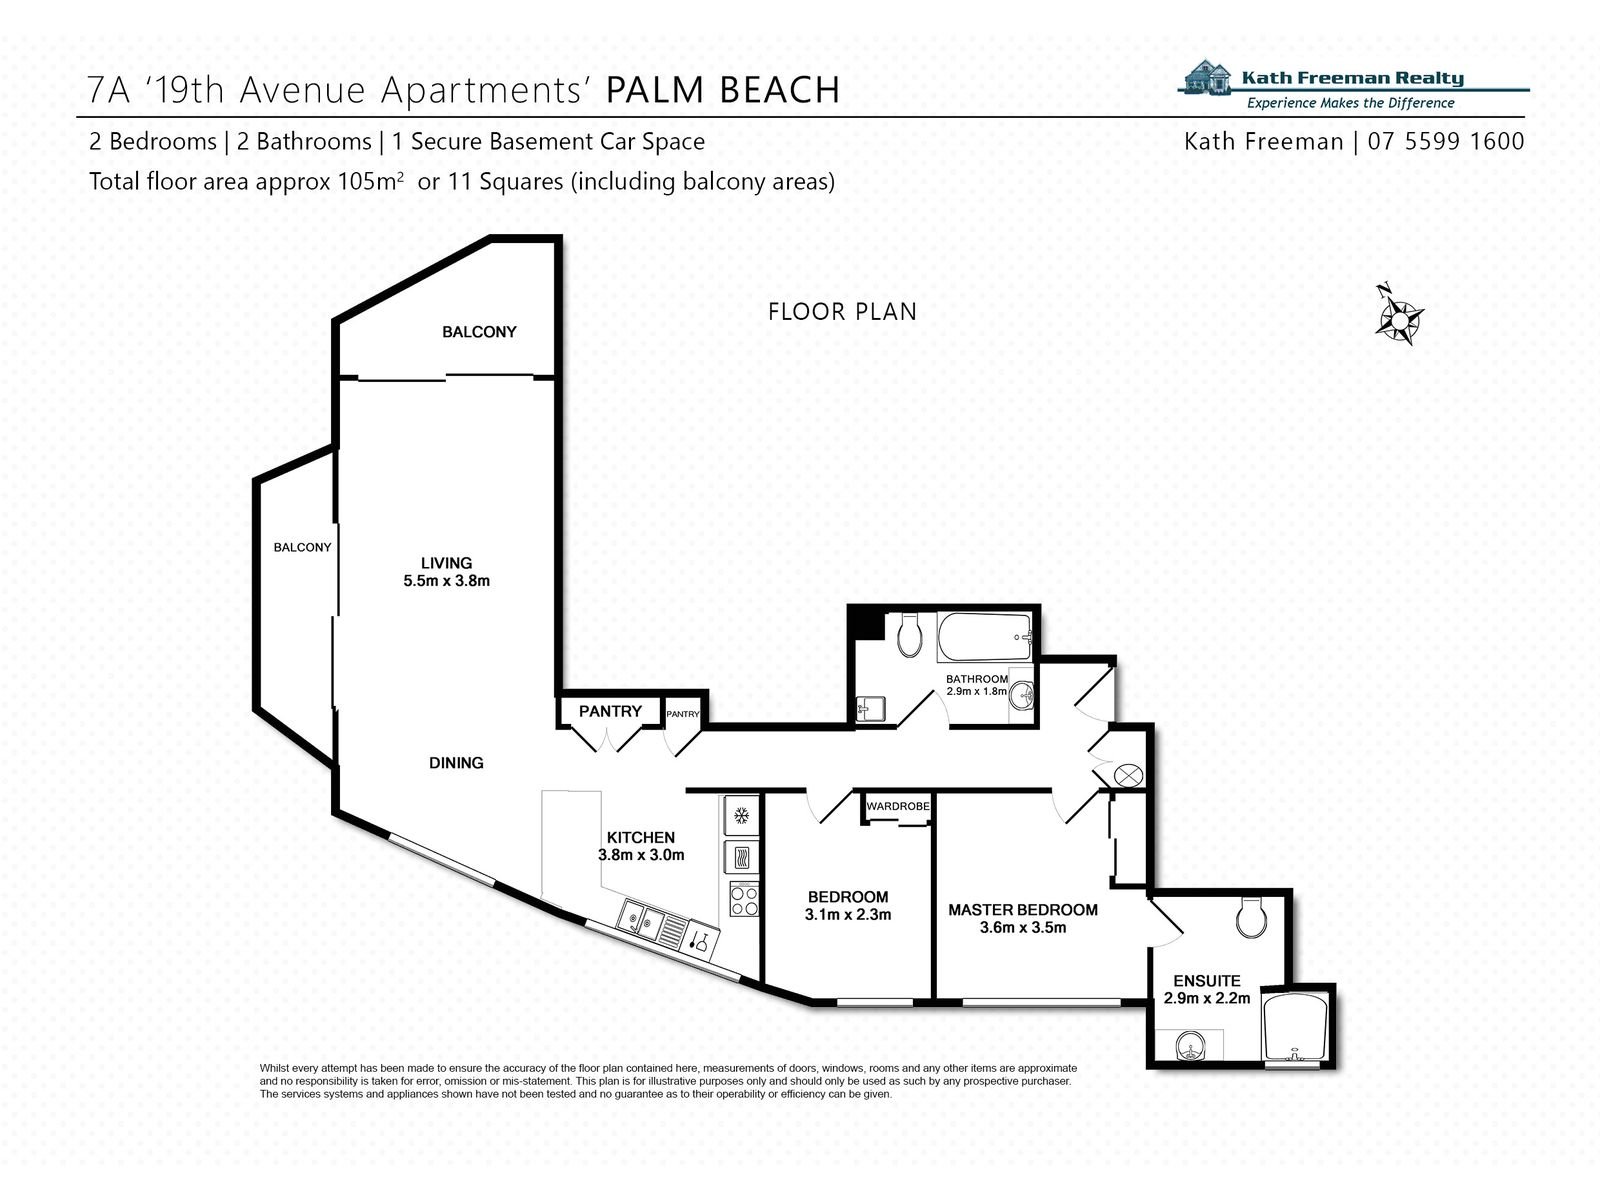 7th FLOOR / 2 19TH AVENUE, Palm Beach